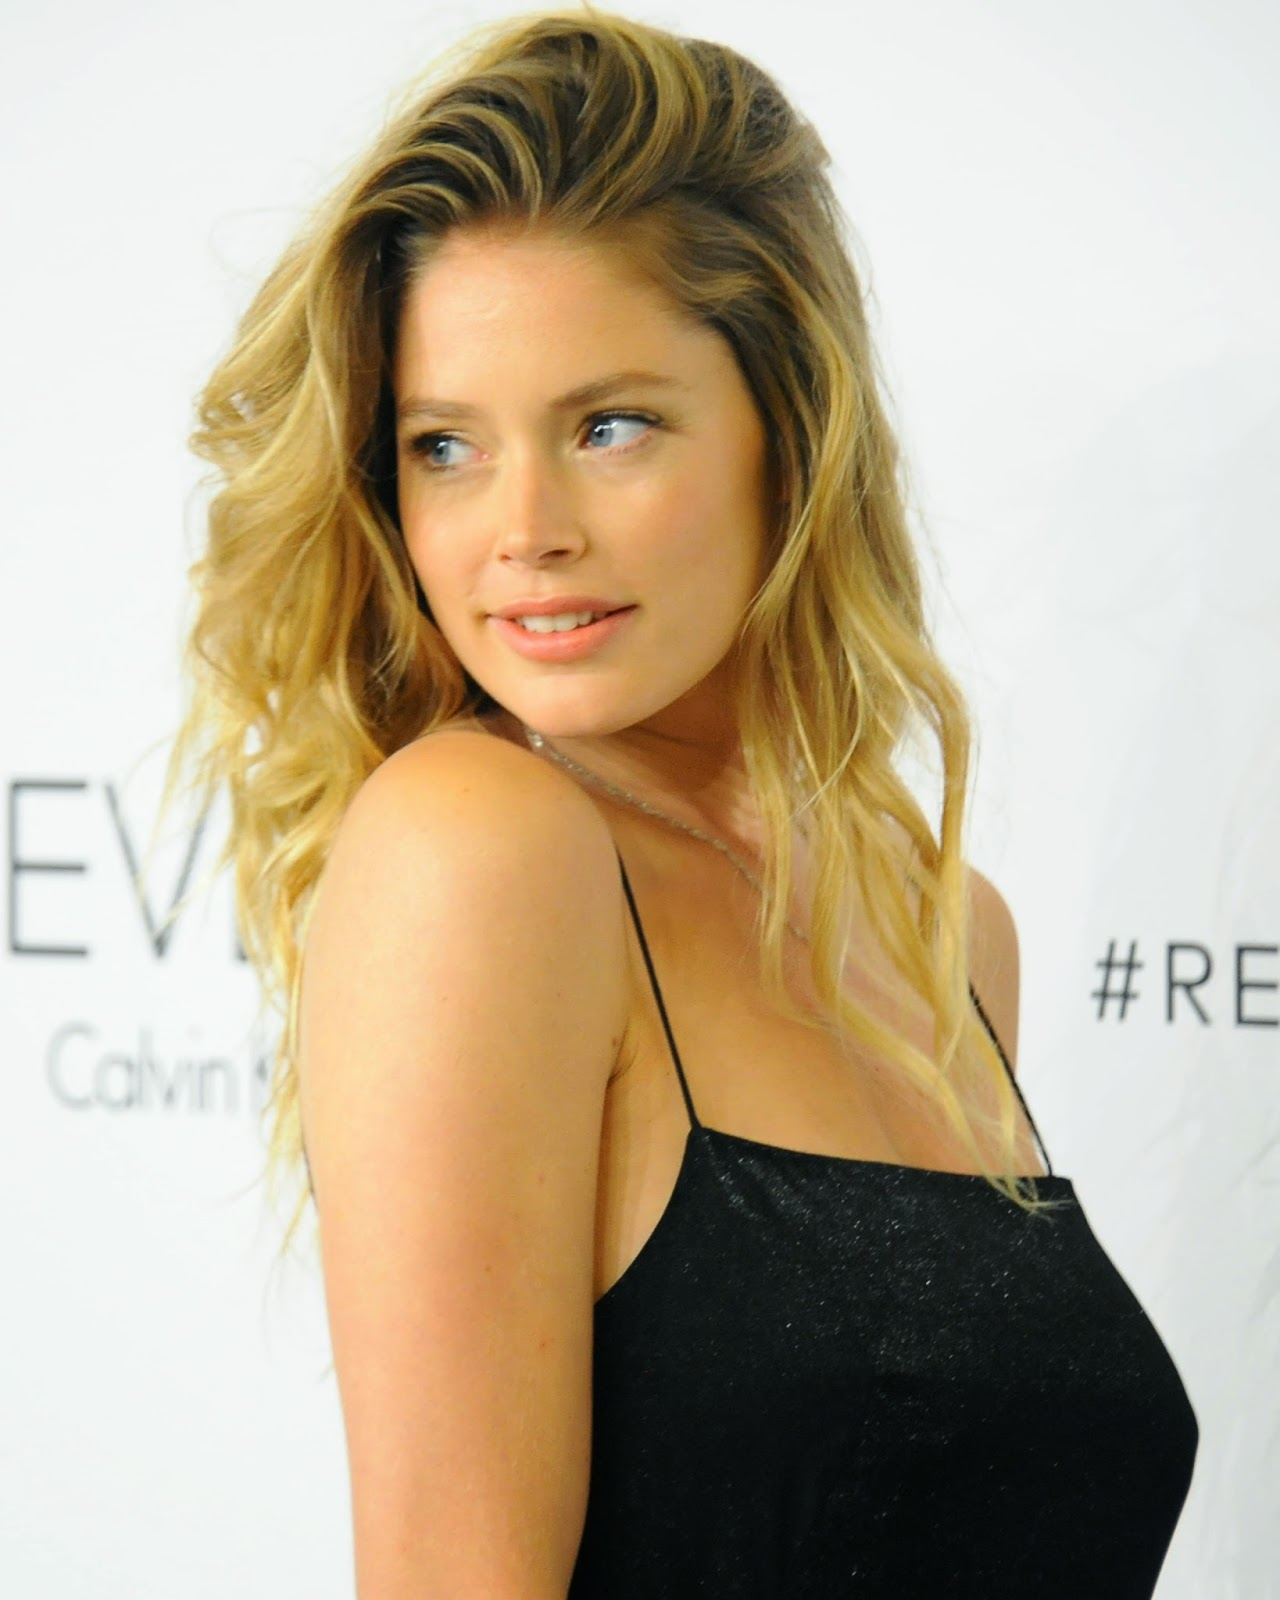 Beautiful Doutzen Kroes 1